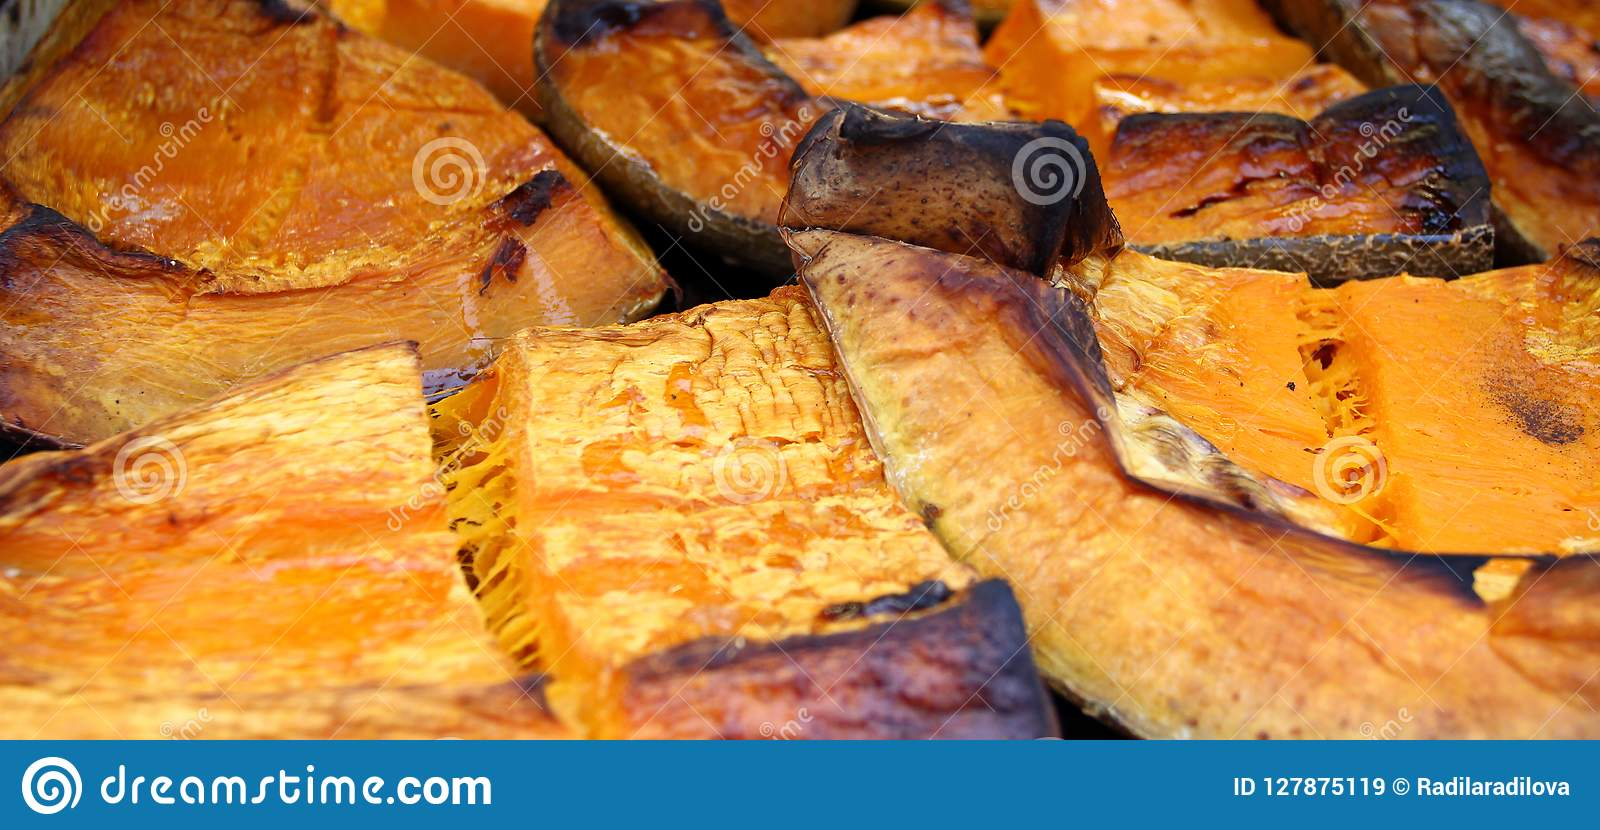 Organic Pumpkin slice baked for Halloween holiday. Colorful baked squash background. Pumpkin texture pattern. Sweet Grilled pumpki